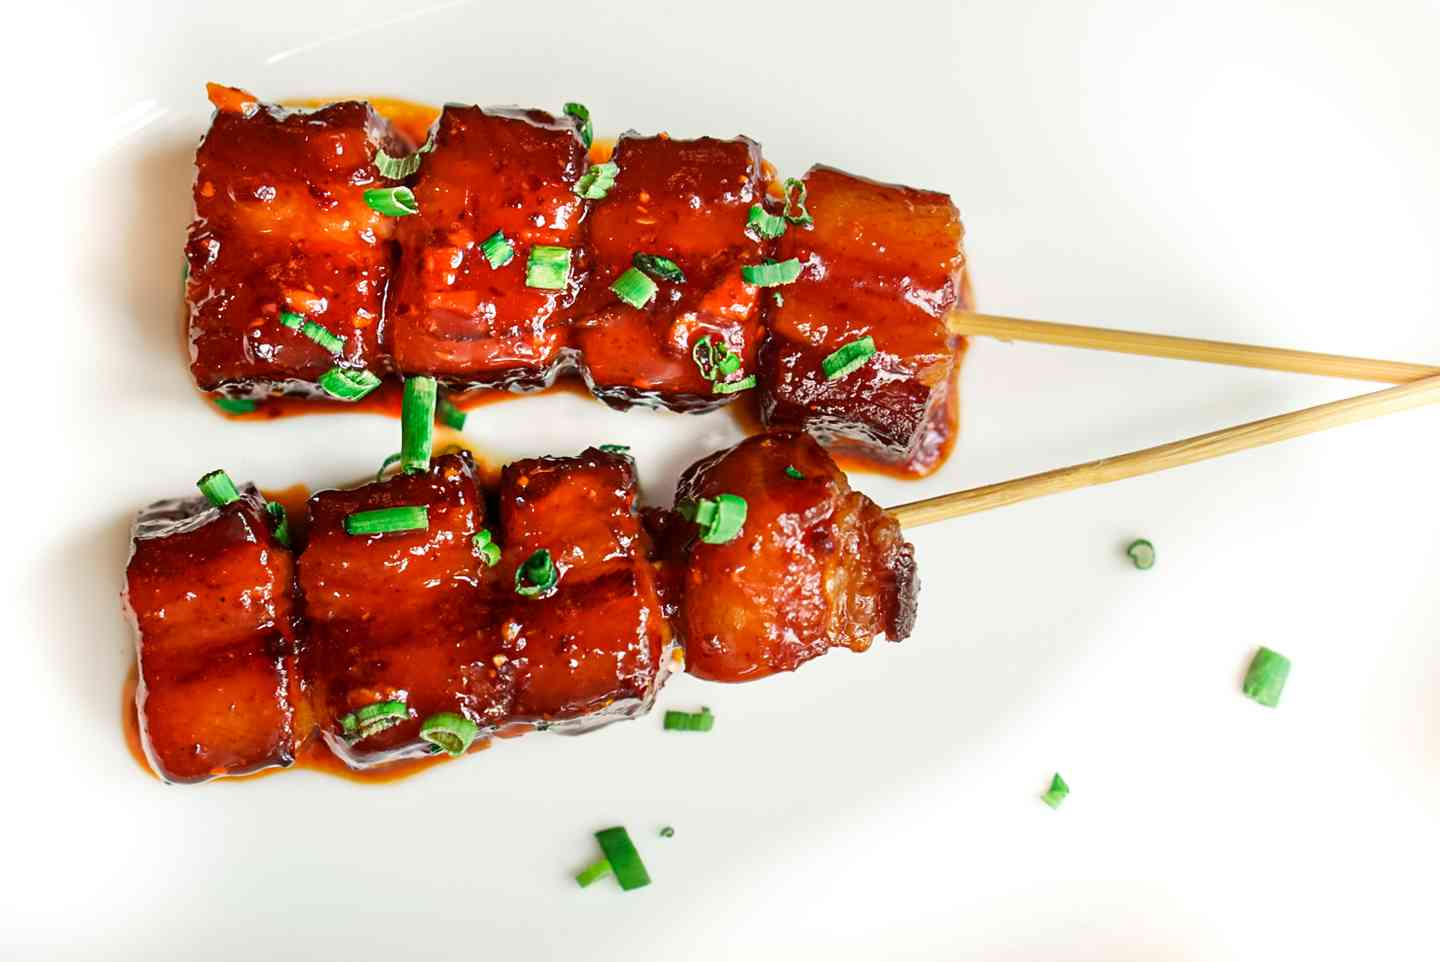 45-Day Cured Bacon Skewers